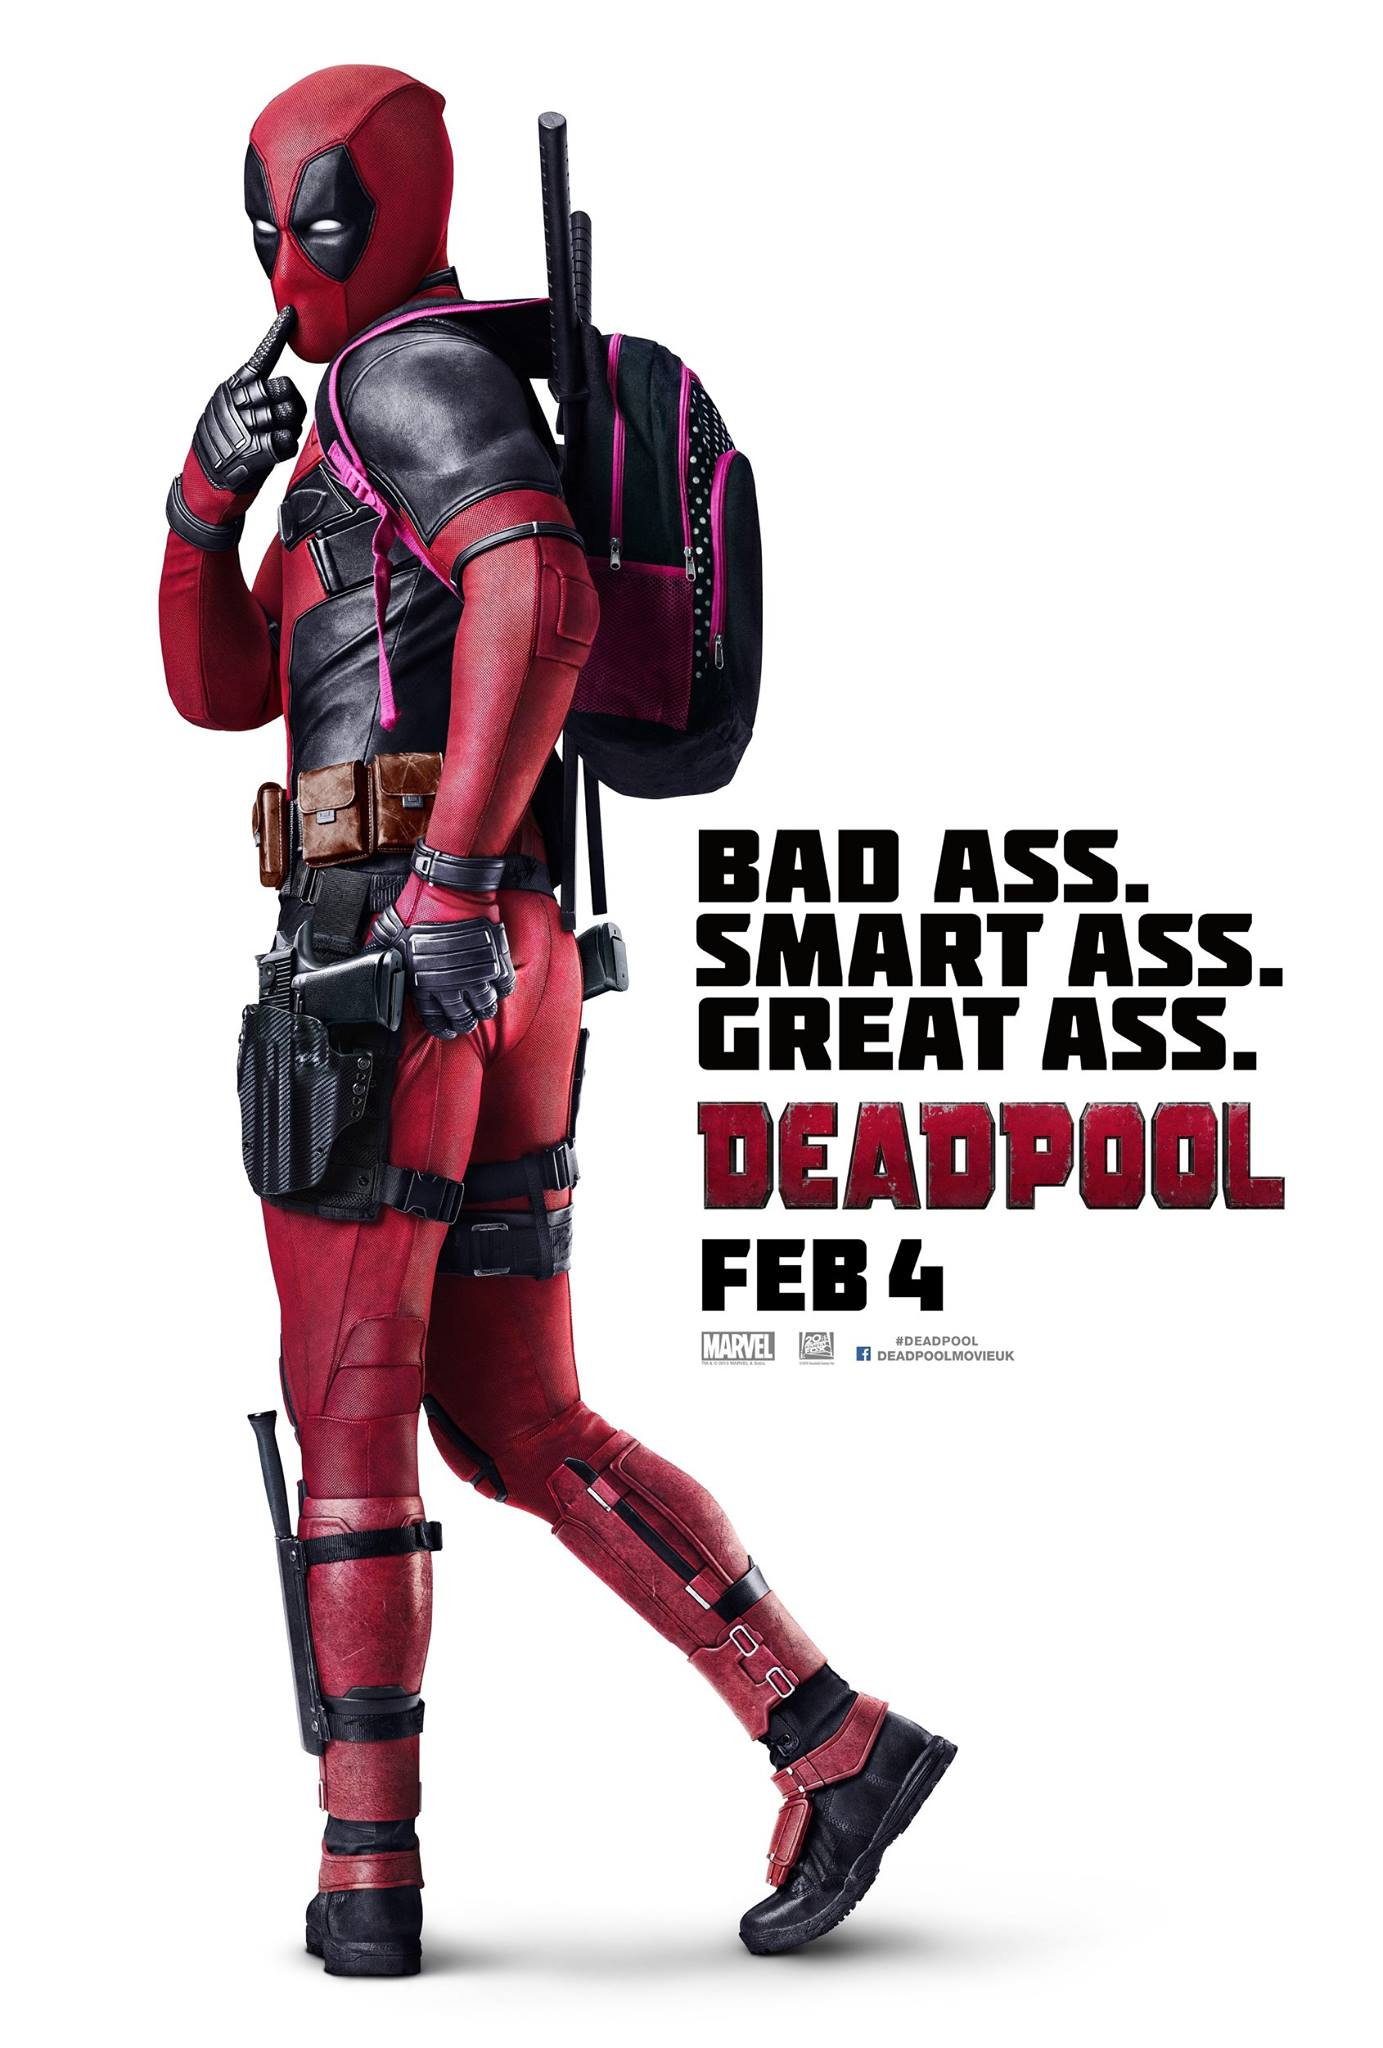 Deadpool (2016) 1080p / 720p BRRip ( 6CH 2GB ) ( 1gb, 720p ) / mkvcage , Torrent , direct link , yify